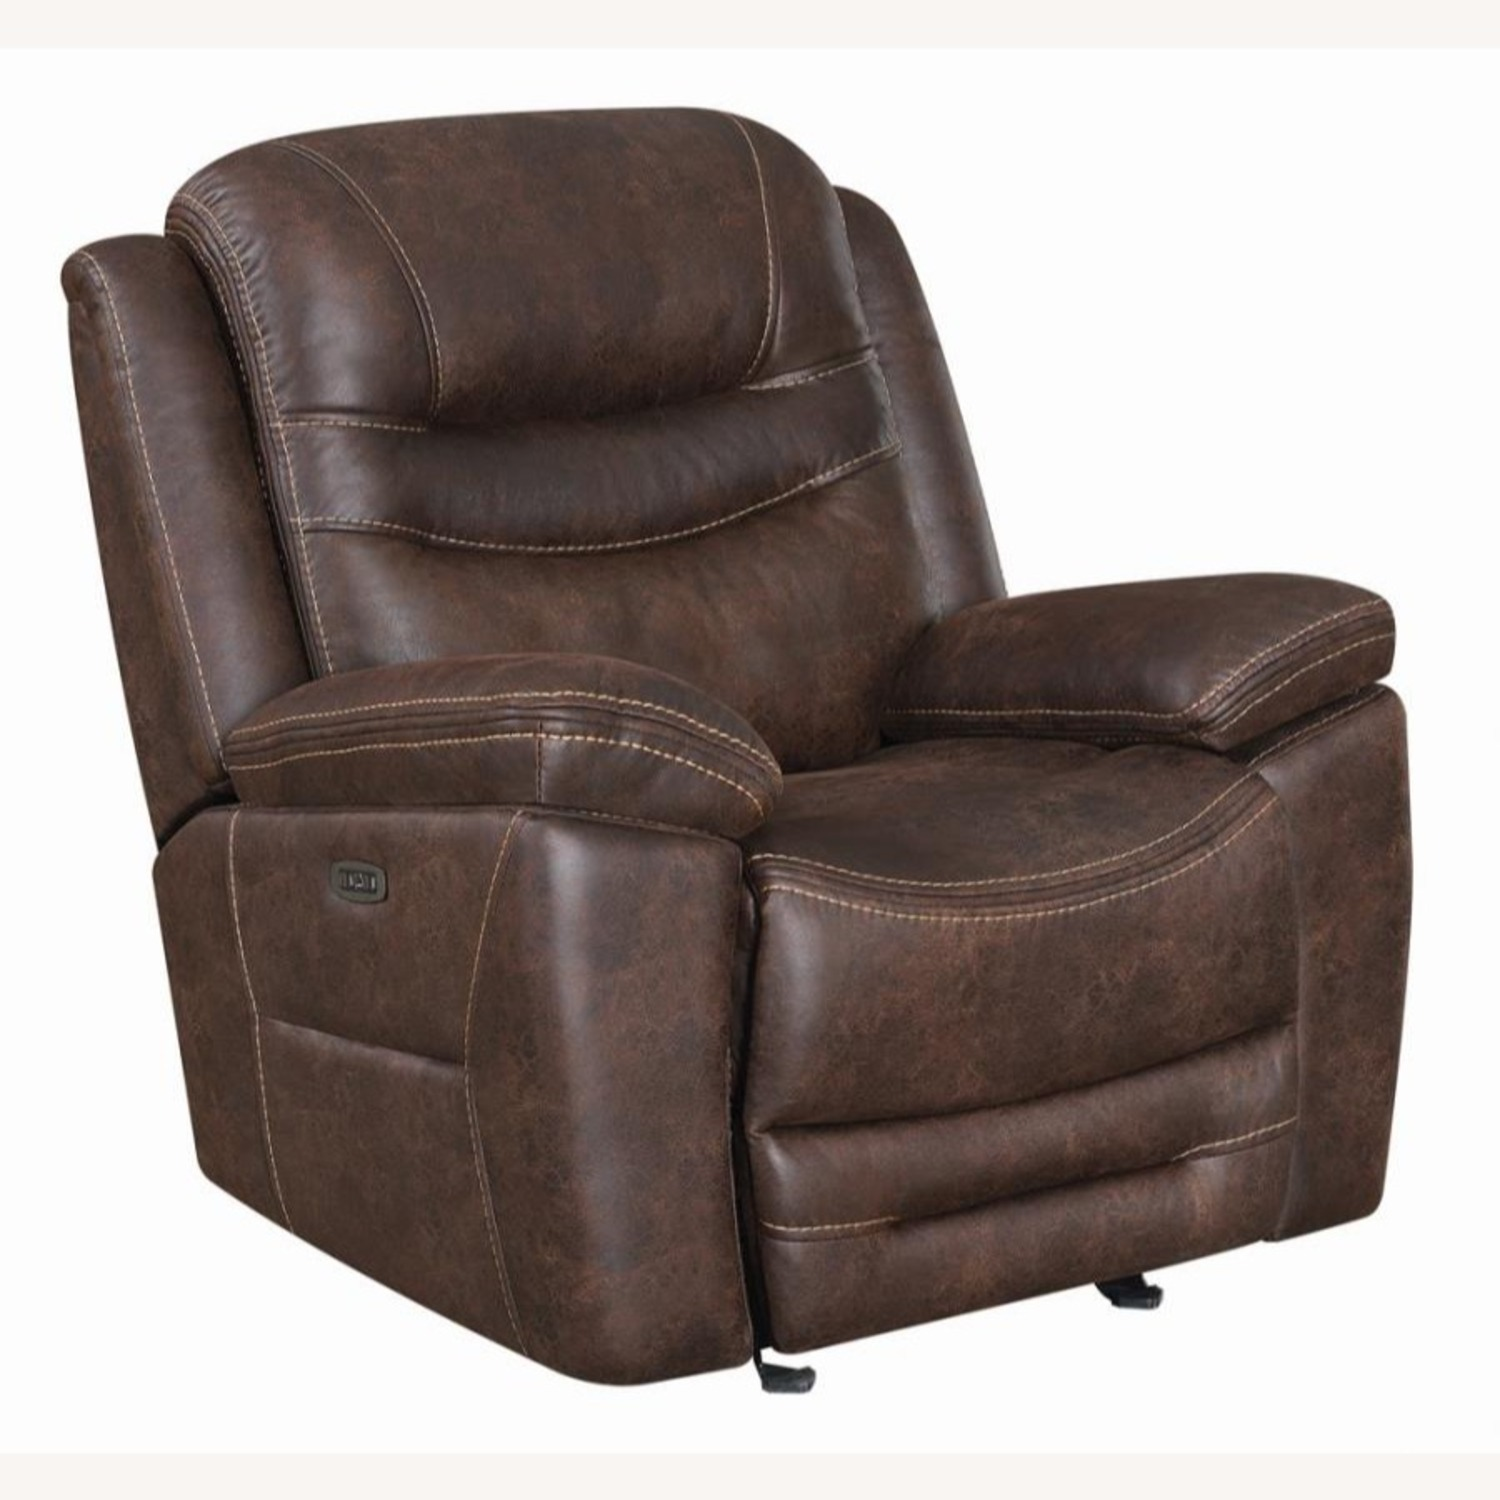 Power Glider Recliner In Chocolate Faux Upholstery - image-0